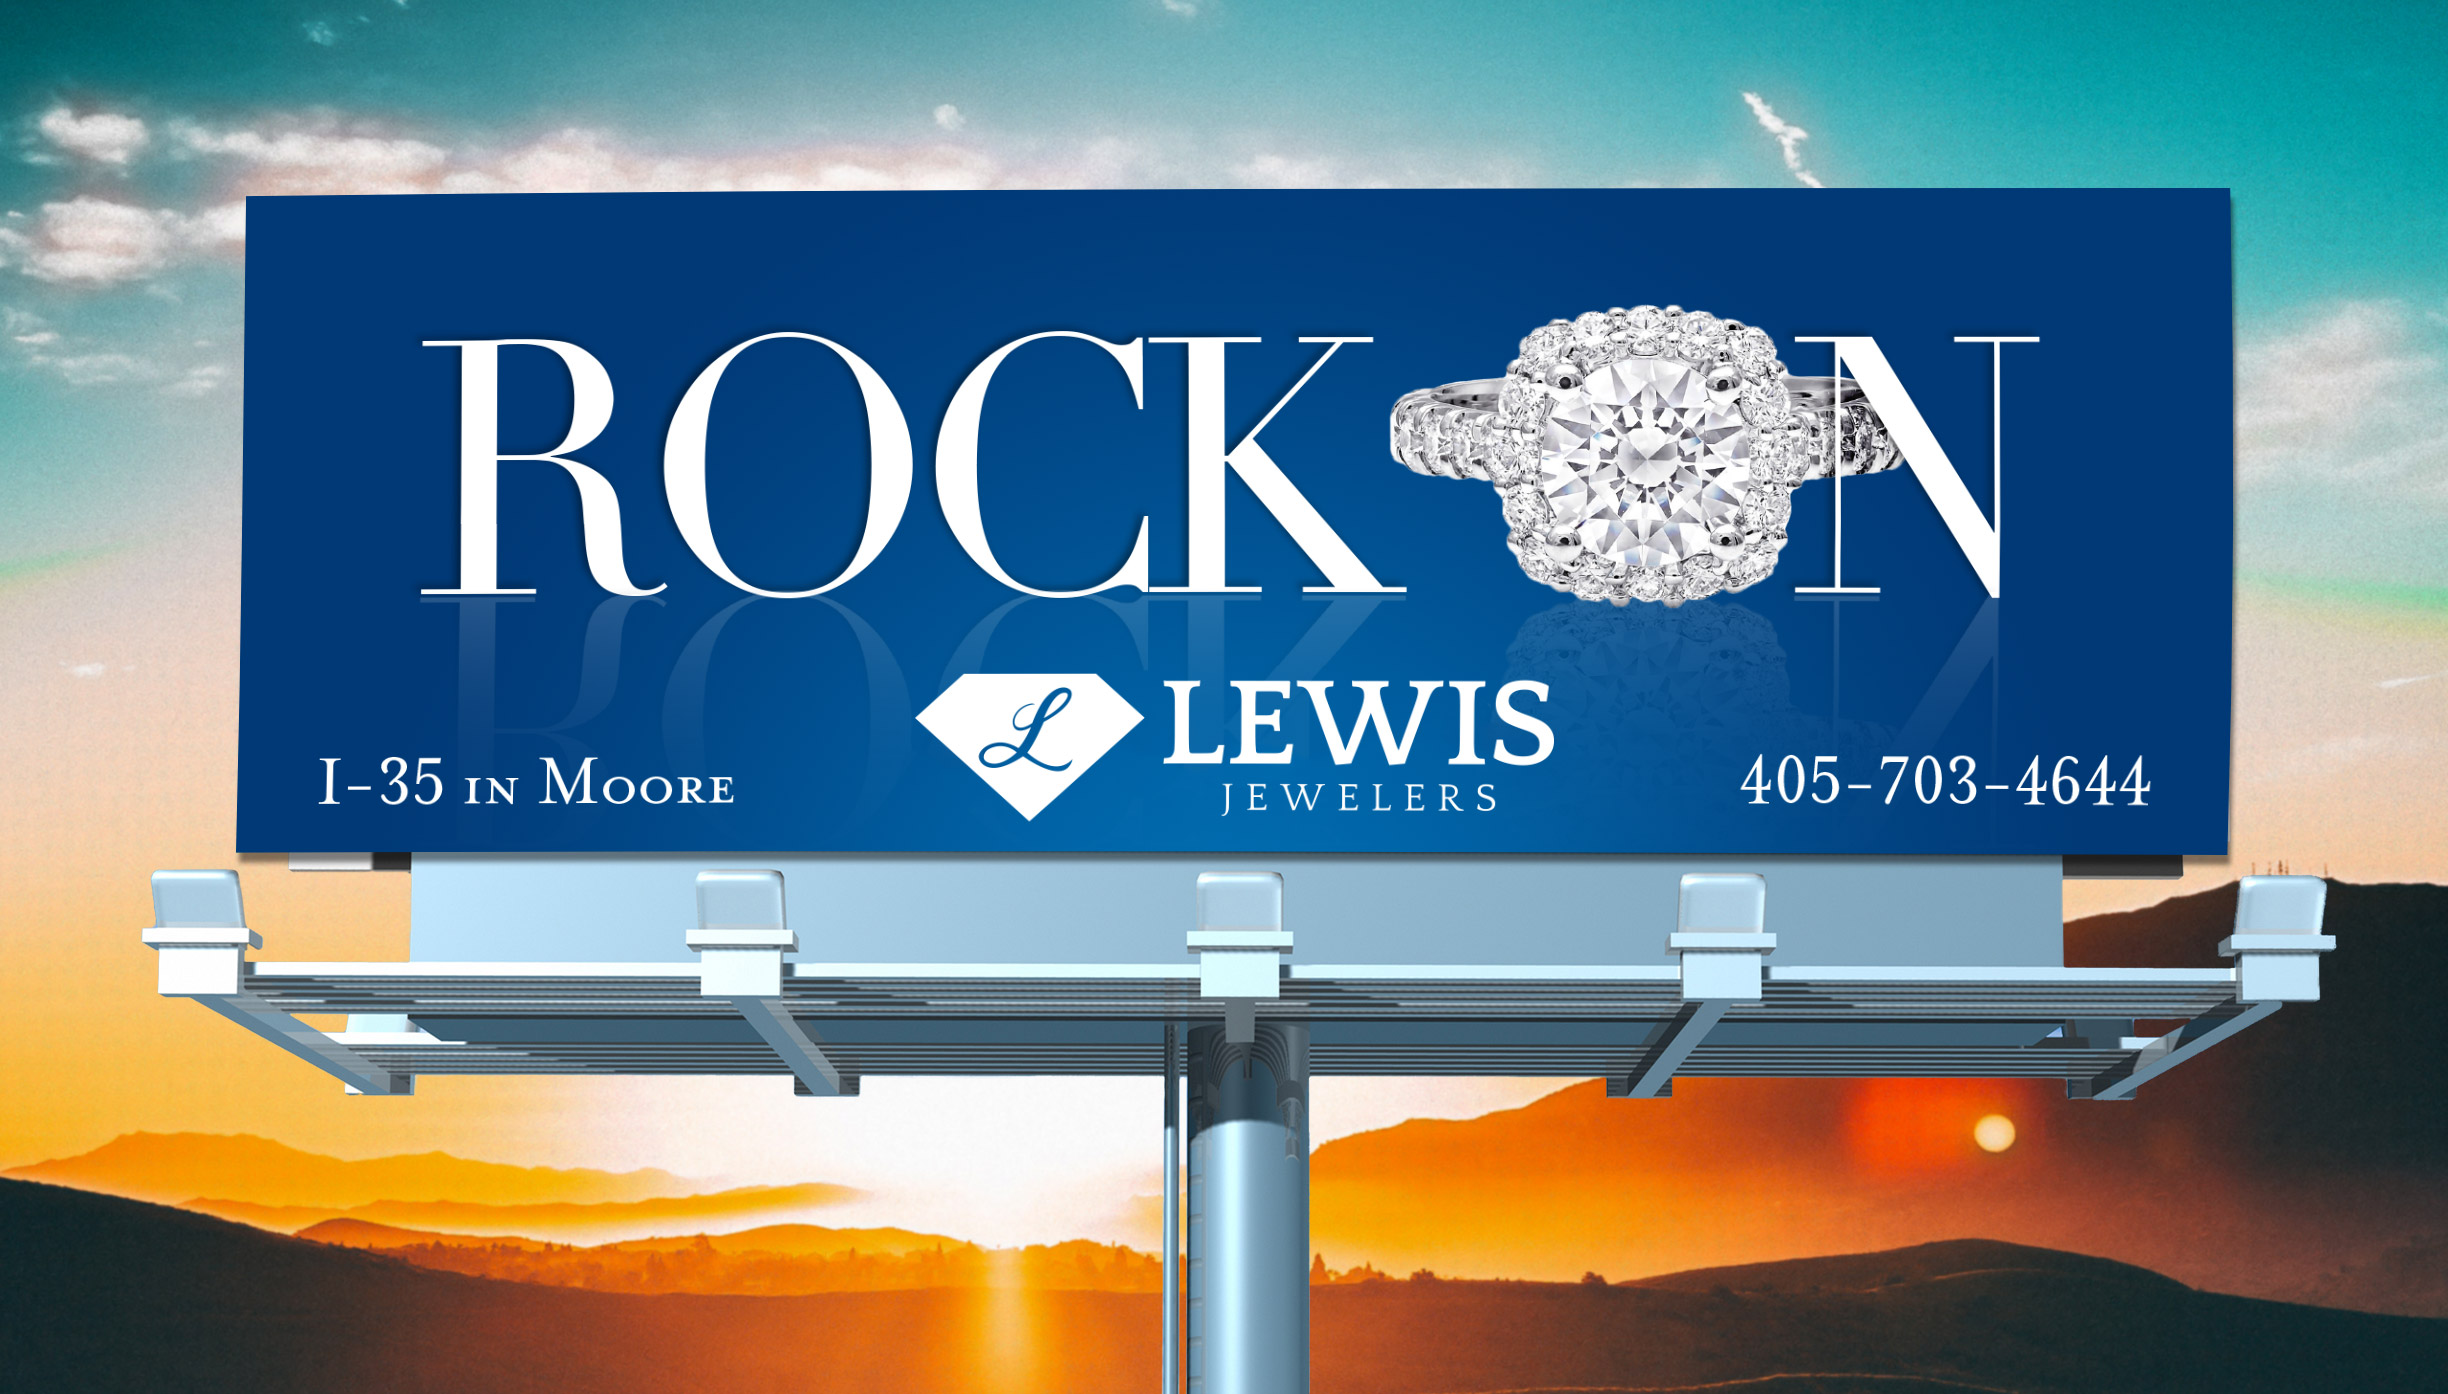 Lewis-Jewelers-Outdoor-Boards-RockOn.jpg